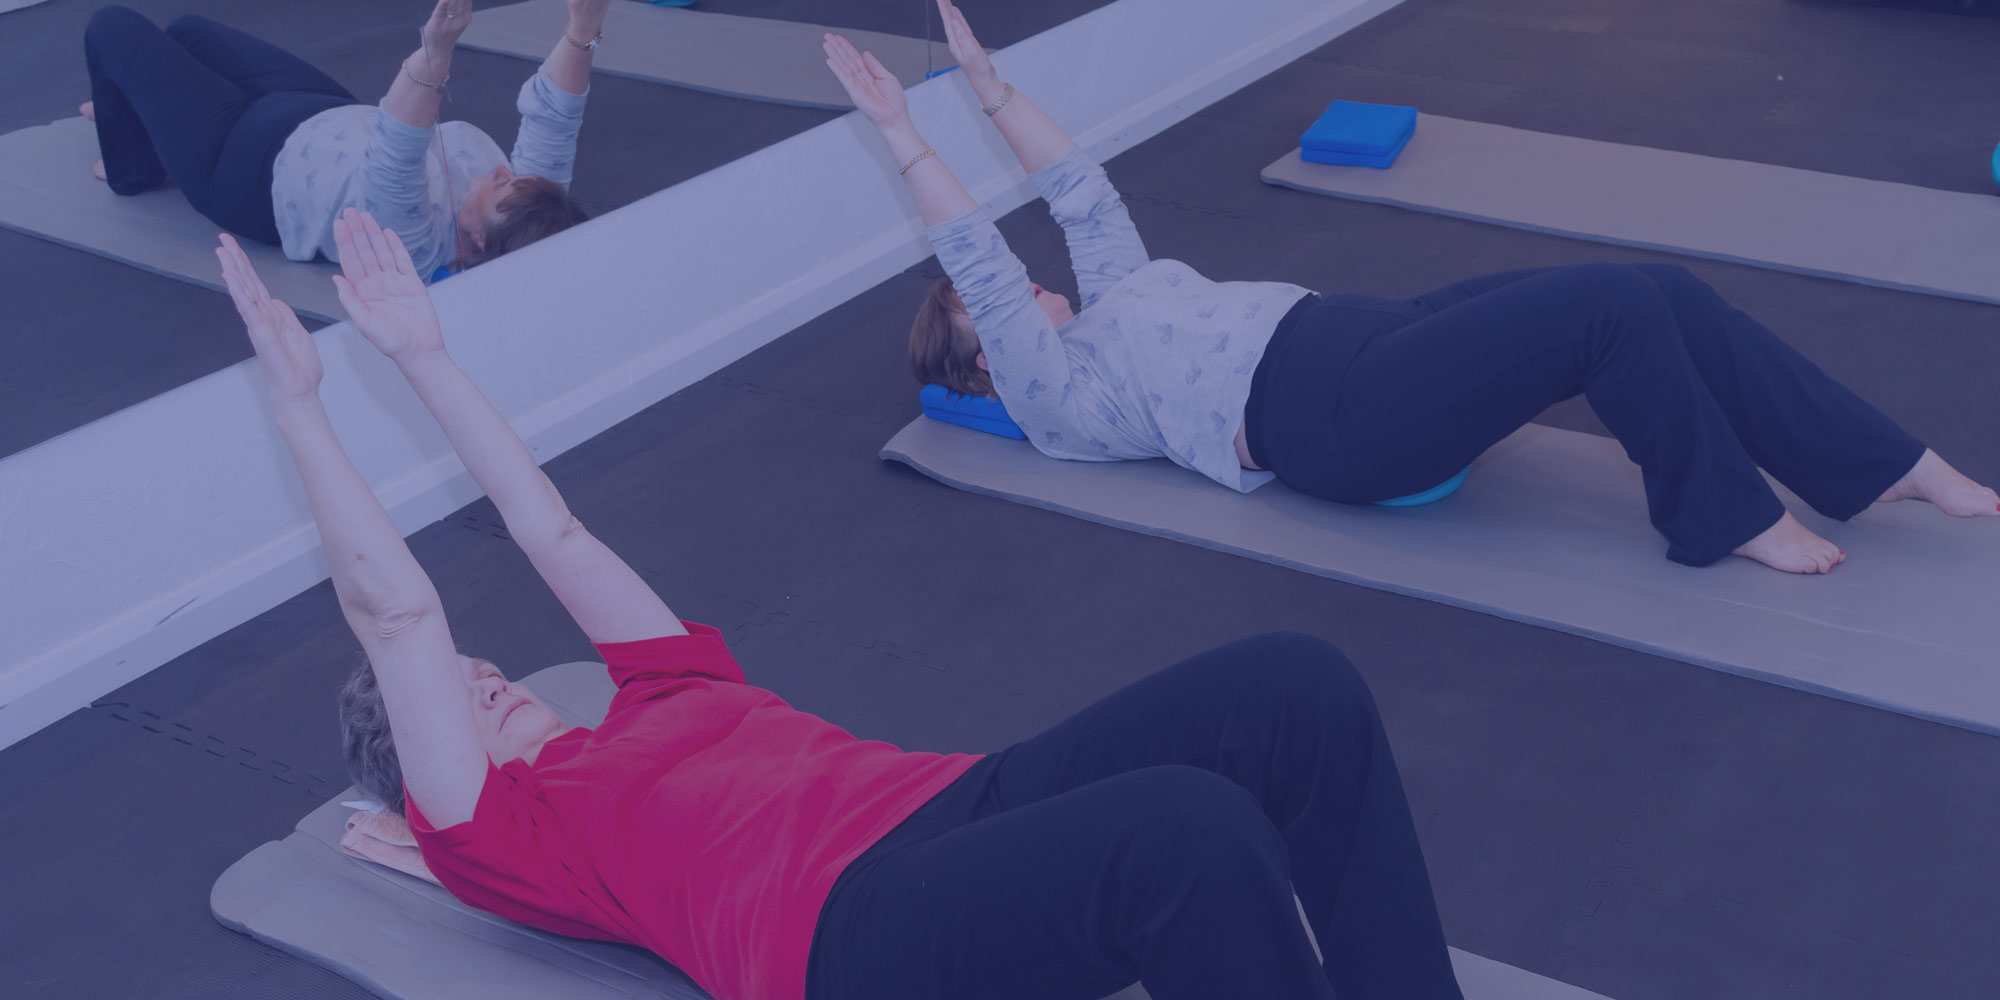 Activ Pilates in Sheffield, Doncaster & Derbyshire